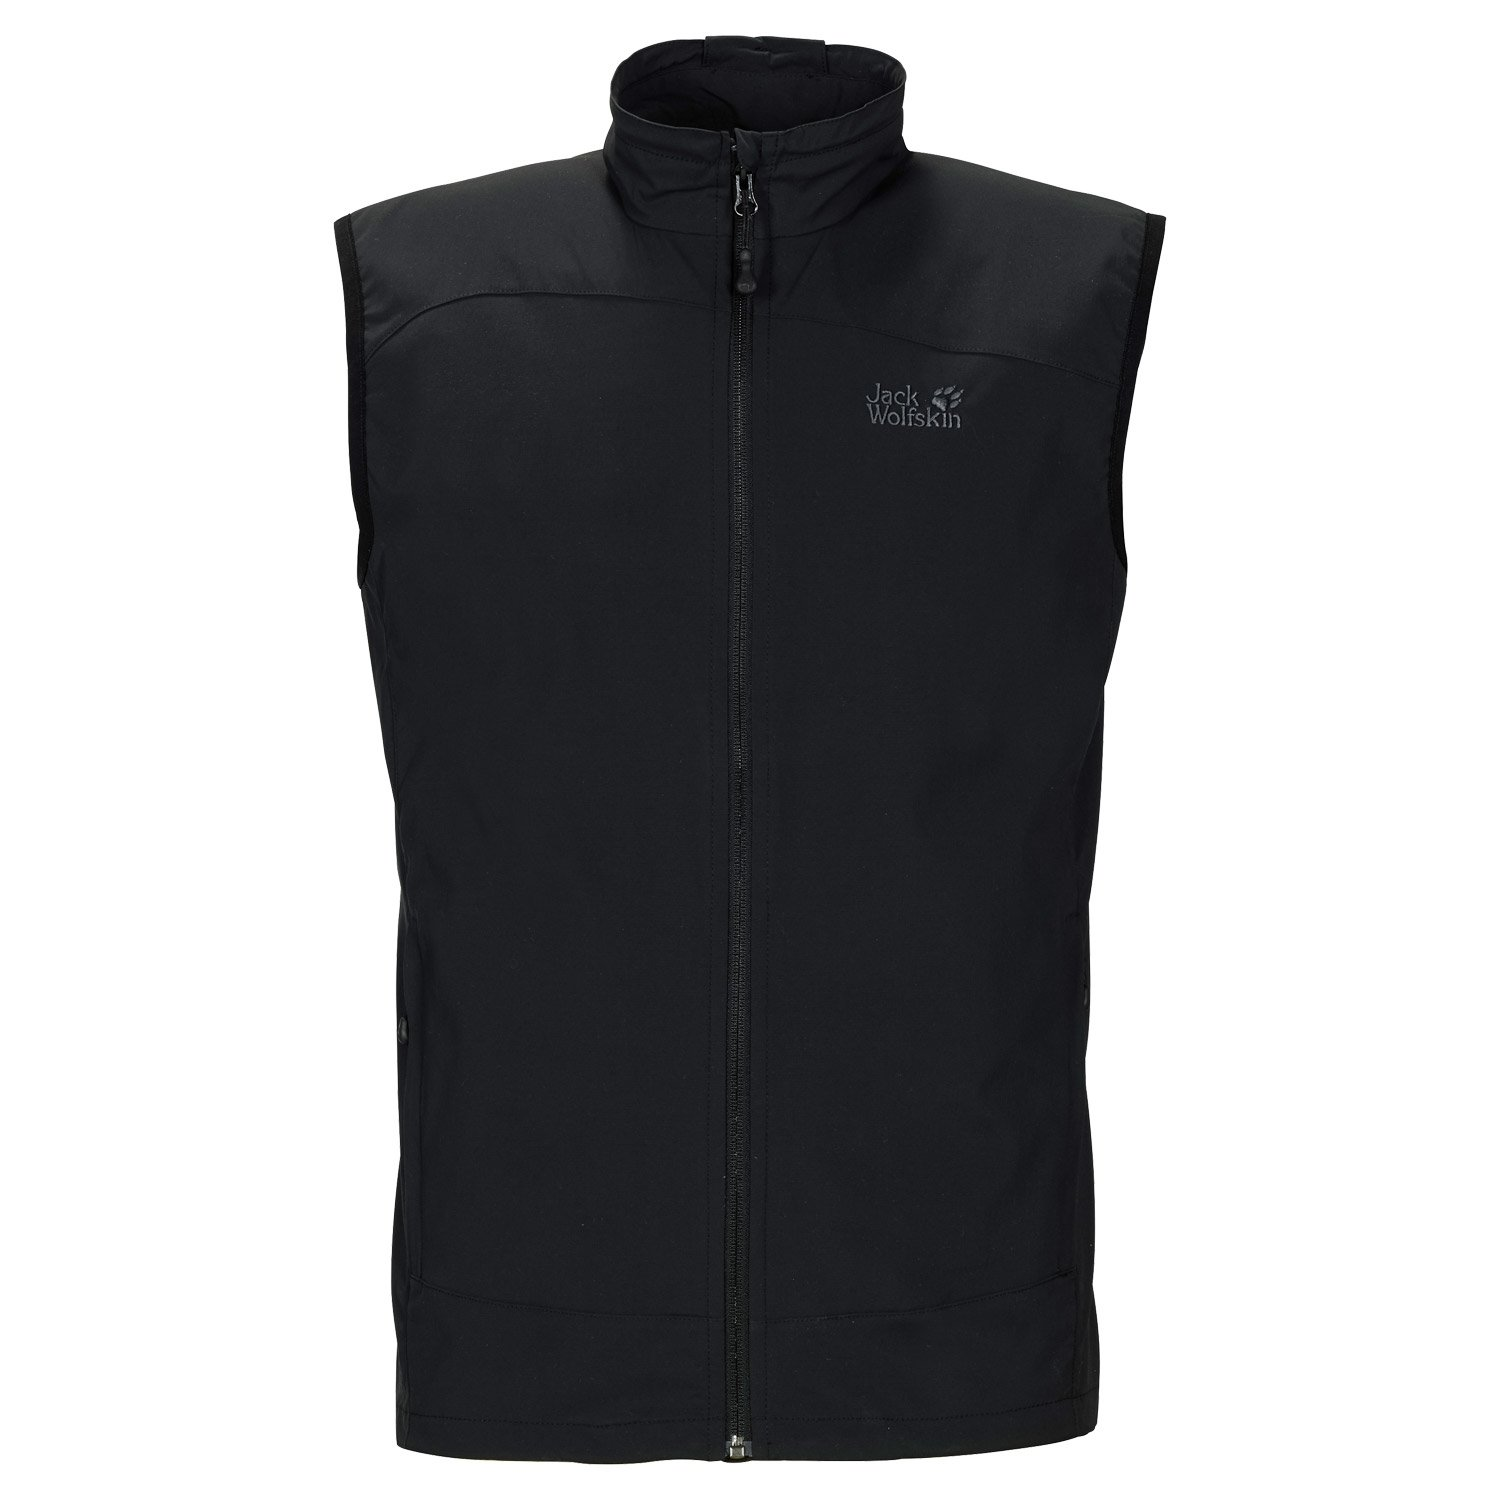 Jack Wolfskin Men's Activate Vest, Black, XX-Large by Jack Wolfskin